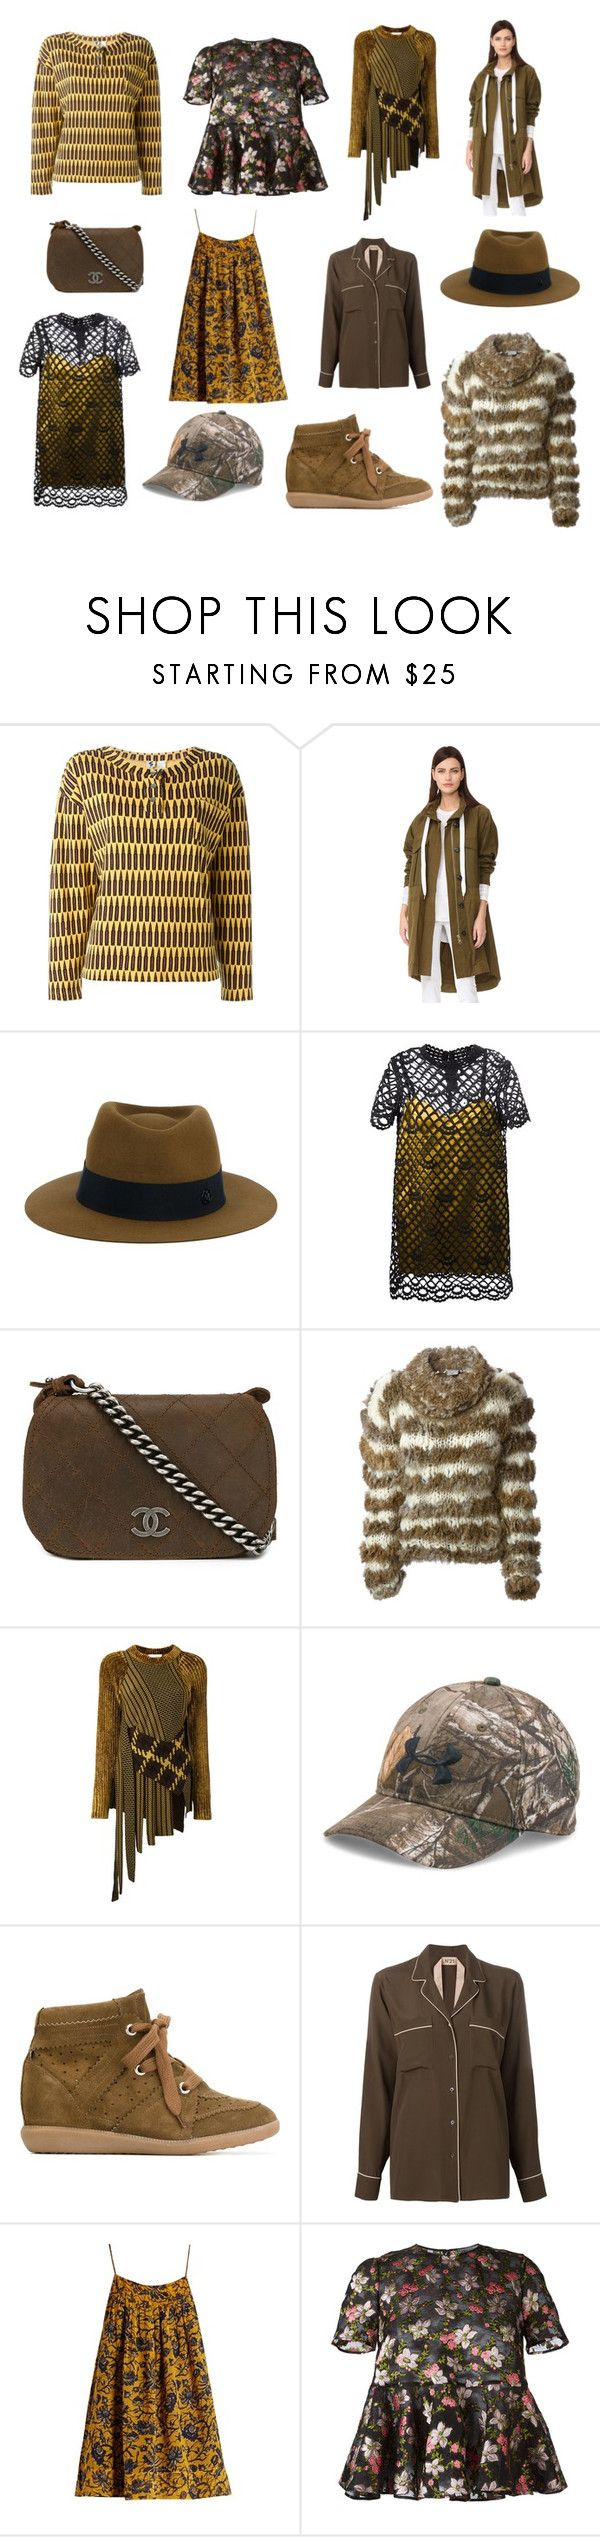 """""""Super Express Sale"""" by donna-wang1 ❤ liked on Polyvore featuring Stephen Sprouse, rag & bone, Maison Michel, Marc Jacobs, Chanel, Christian Dior, 3.1 Phillip Lim, Under Armour, Isabel Marant and N°21"""